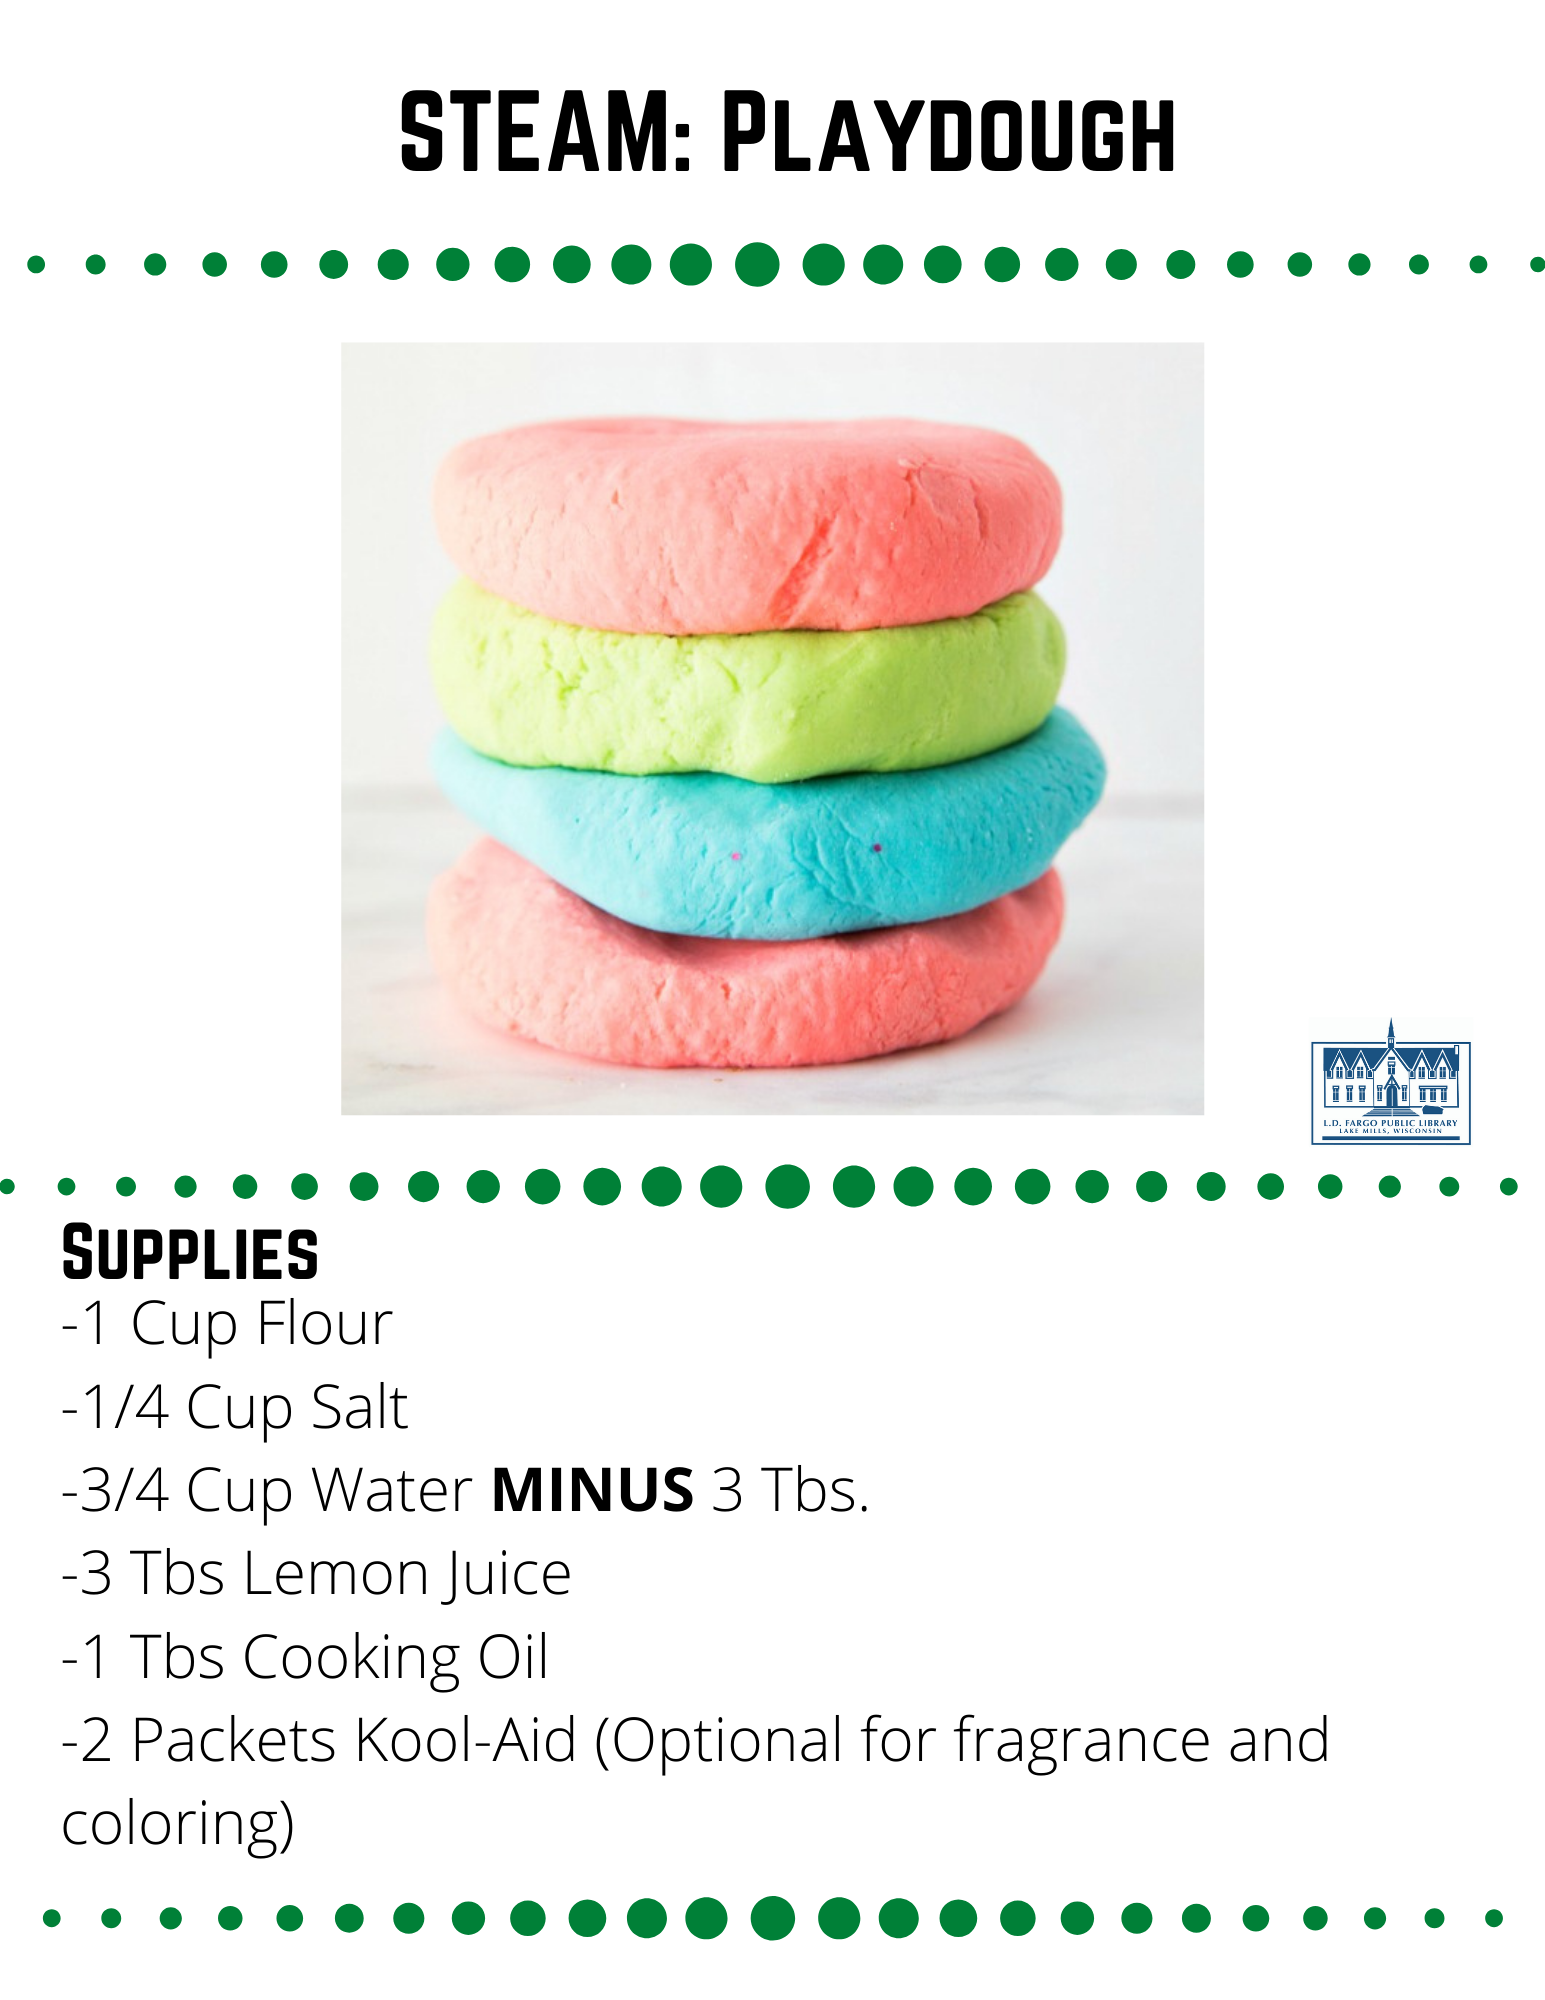 STEAM: Playdough  Supplies  -1 Cup Flour -1/4 Cup Salt -3/4 Cup Water MINUS 3 Tbs. -3 Tbs Lemon Juice -1 Tbs Cooking Oil -2 Packets Kool-Aid (Optional for fragrance and coloring)  Step 1  Measure the water and lemon juice into a heatproof, microwavable 2-cup measuring cup. Heat in the microwave until just boiling, about three minutes.  Step 2  Mix together the flour and salt.  Step 3  If using Kool Aid, slowly (the mixture will foam a bit) pour the kool-aid packets into the HOT water and lemon juice mixture and add additional food coloring to intensify the color if desired.  Step 4  Slowly pour the liquid into the flour and salt mixture, and stir with a wooden paddle until it just barely begins to form a dough.  Step 5  Drizzle the tablespoon of cooking oil over the dough and stir again until it forms a ball. At this point, you may want to knead the dough with your hands.  Step 6  It may feel a bit sticky, but DO NOT add more flour. As the dough cools it will thicken and become less sticky.  Once the dough is completely cooled, you may add flour a tablespoon at a time until it is the perfect consistency.  Note:  This recipe makes a small batch. Each batch makes just a bit over one cup of play dough. If you want to do rainbow colors like the above photo,  you will have to make several batches with different colors of Kool-Aid/food coloring.  Source: https://stayathomeeducator.com/absolutely-perfect-no-cook-scented-play-dough-recipe-without-cream-tartar/